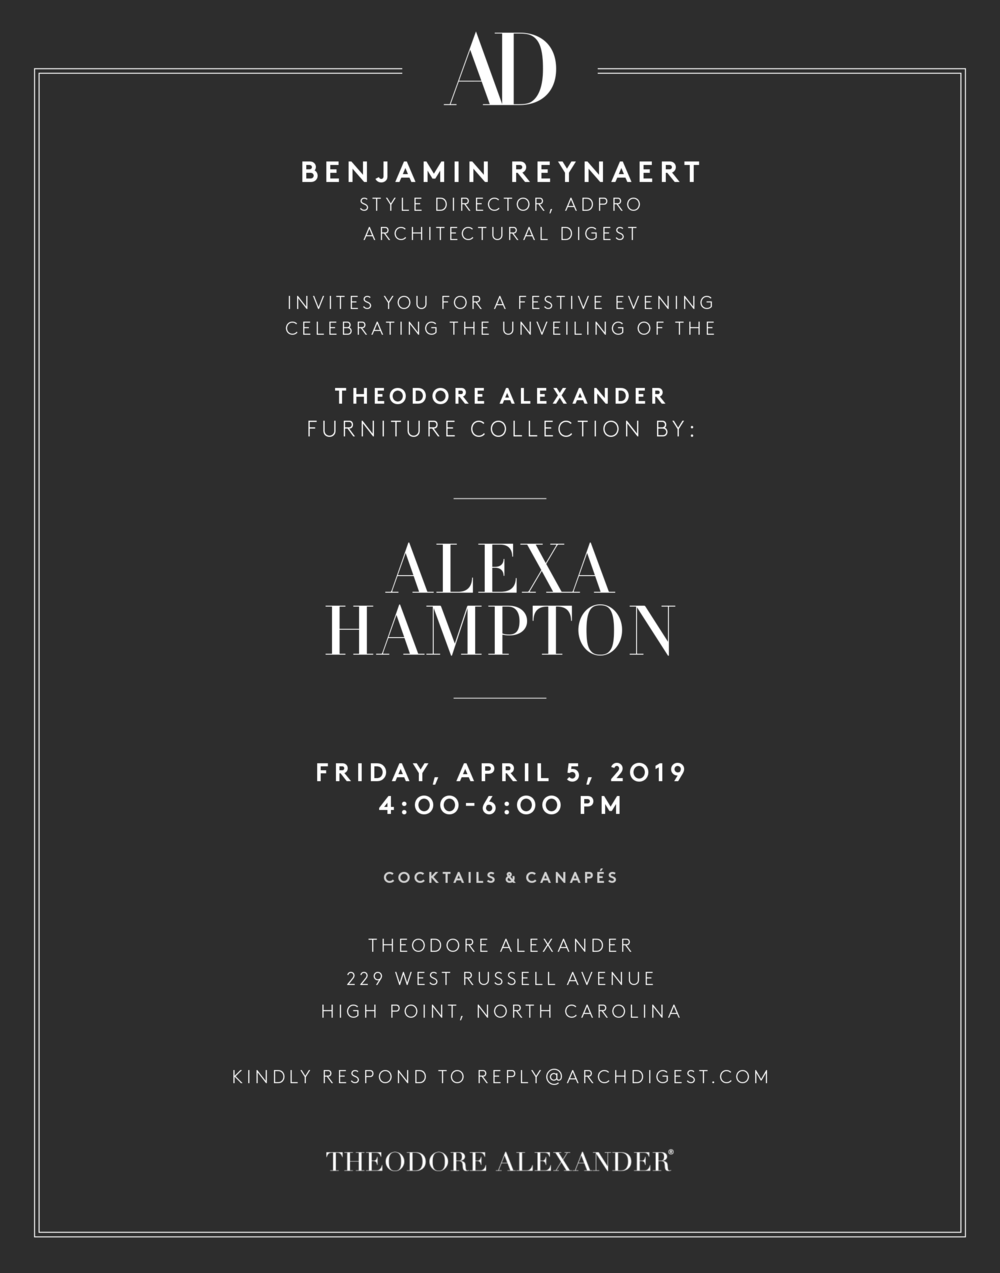 AD cocktails celebrating Alexa Hampton.png